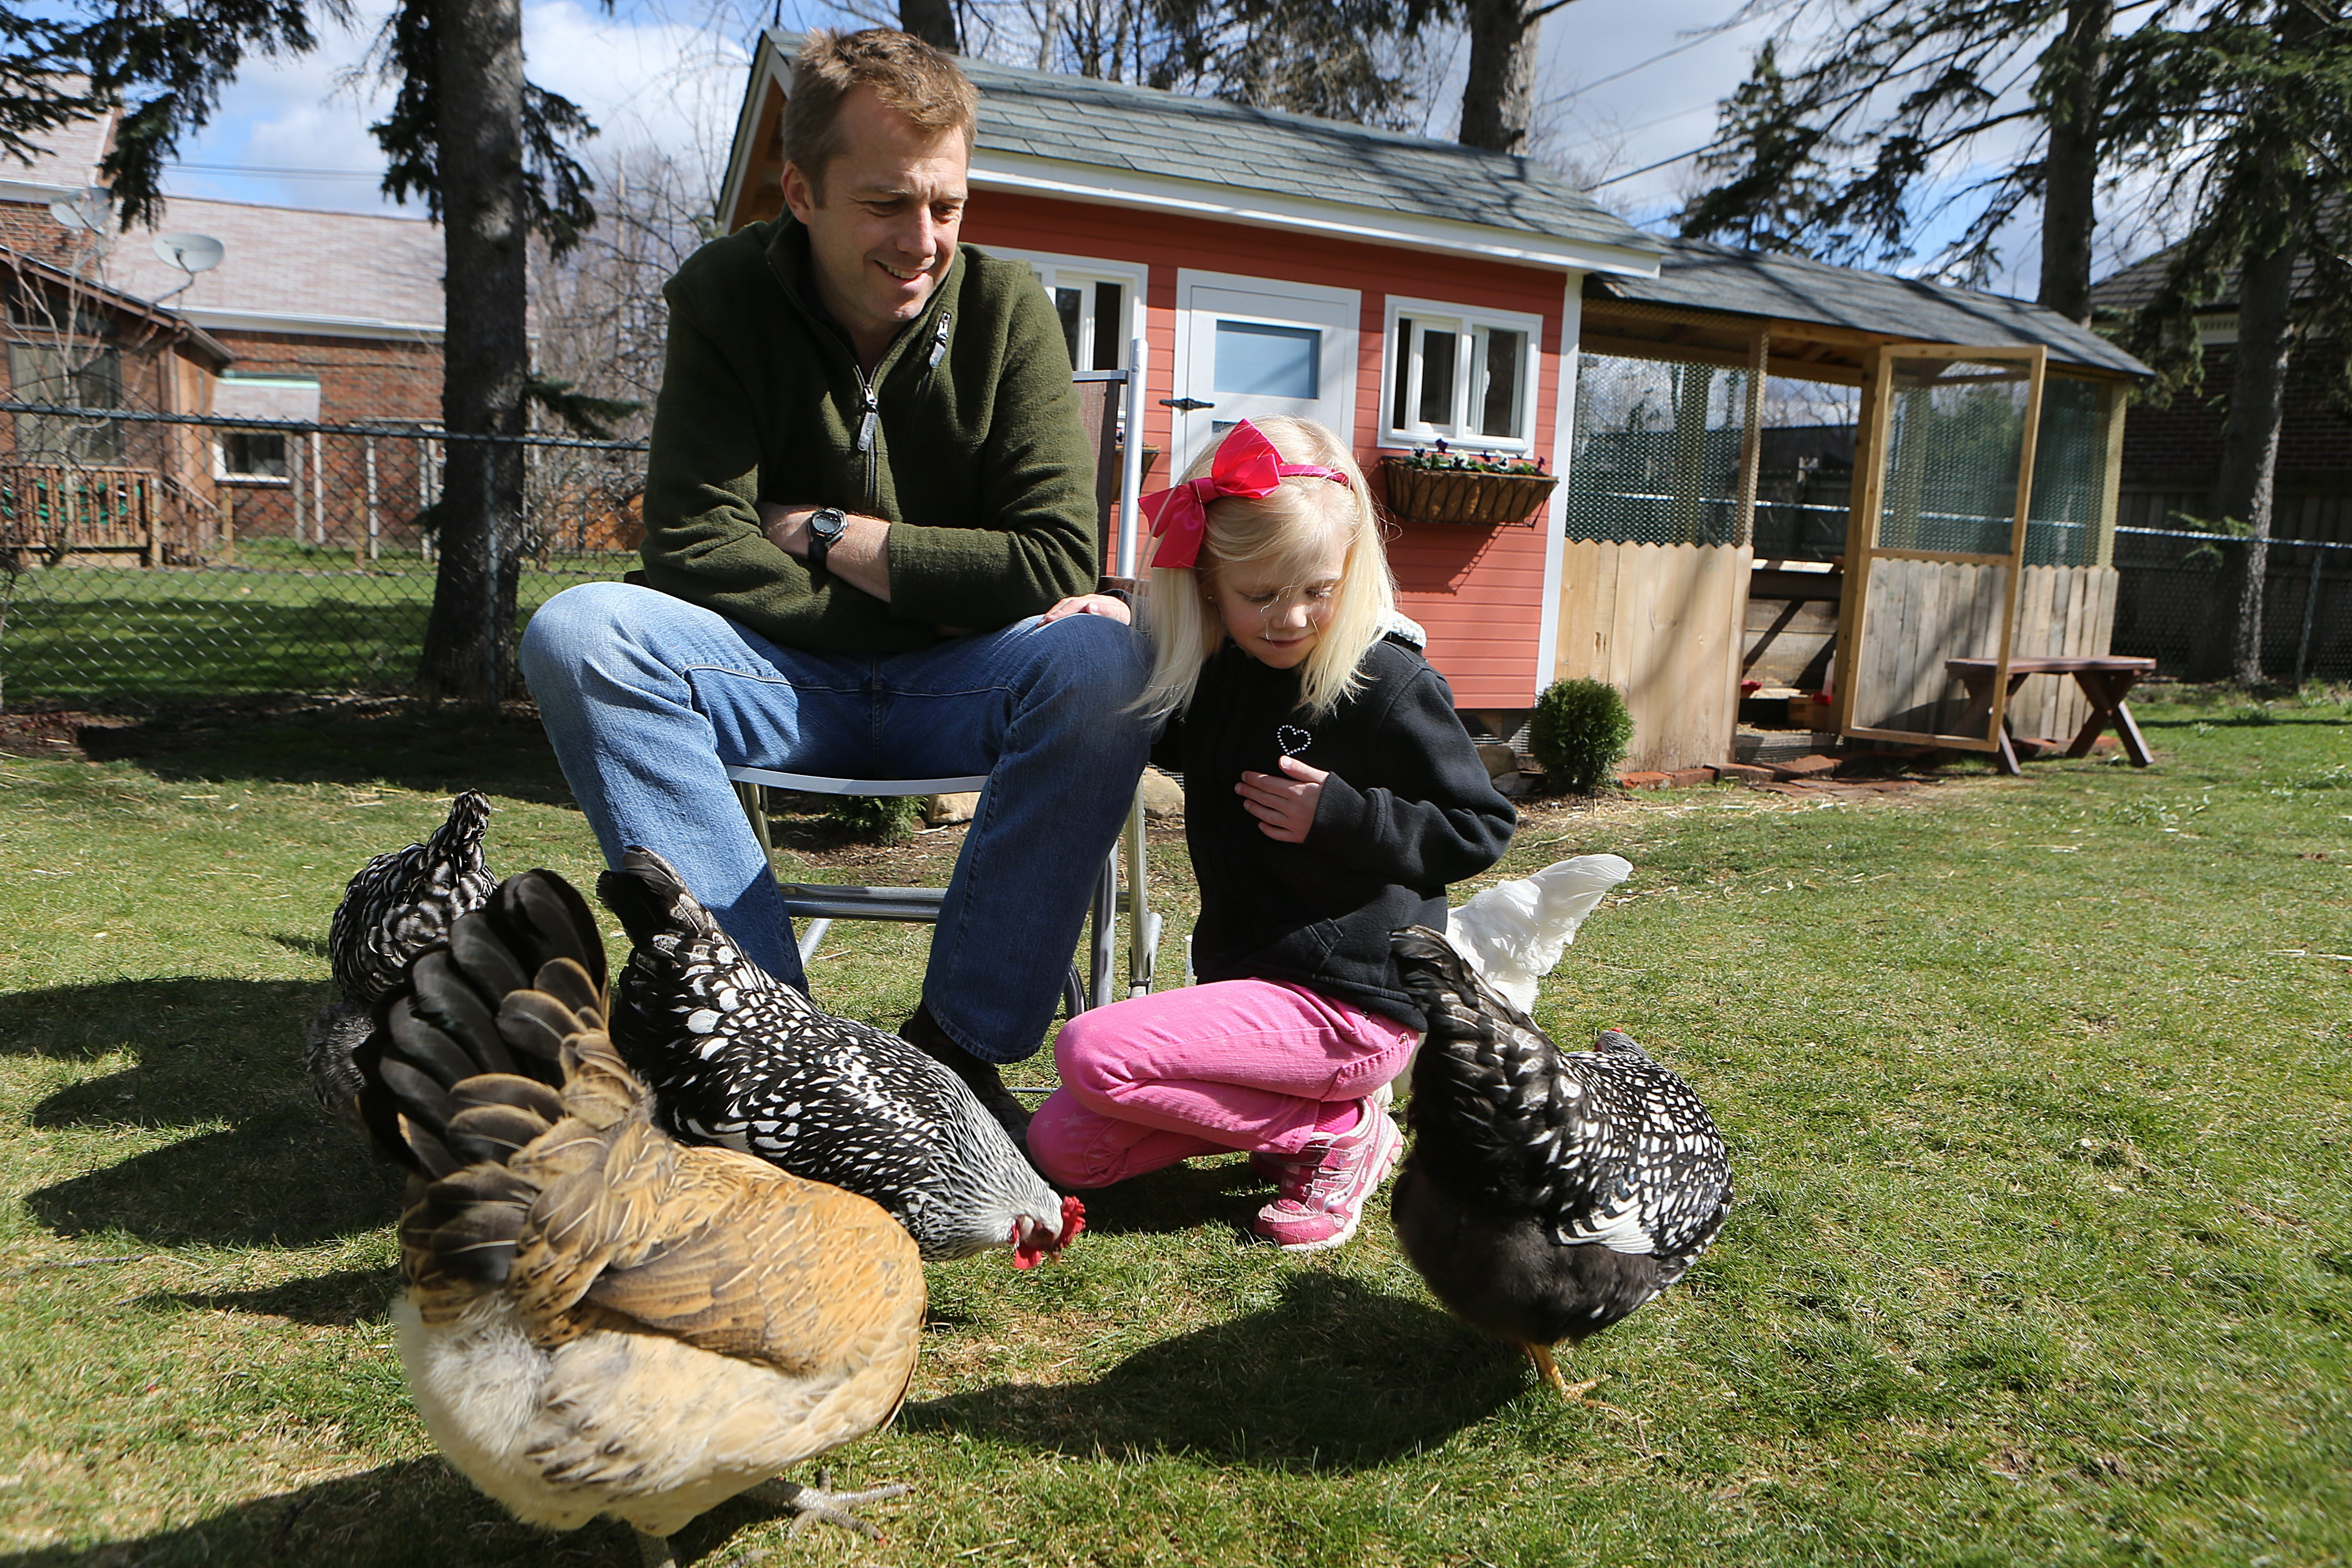 Brooks Anderson and his 6-year-old daughter, Amelia, sit Sunday in front of the chicken coop Brooks Anderson built for the six chickens they want to keep in the backyard of their Amherst home. Town officials are not inclined to let them.